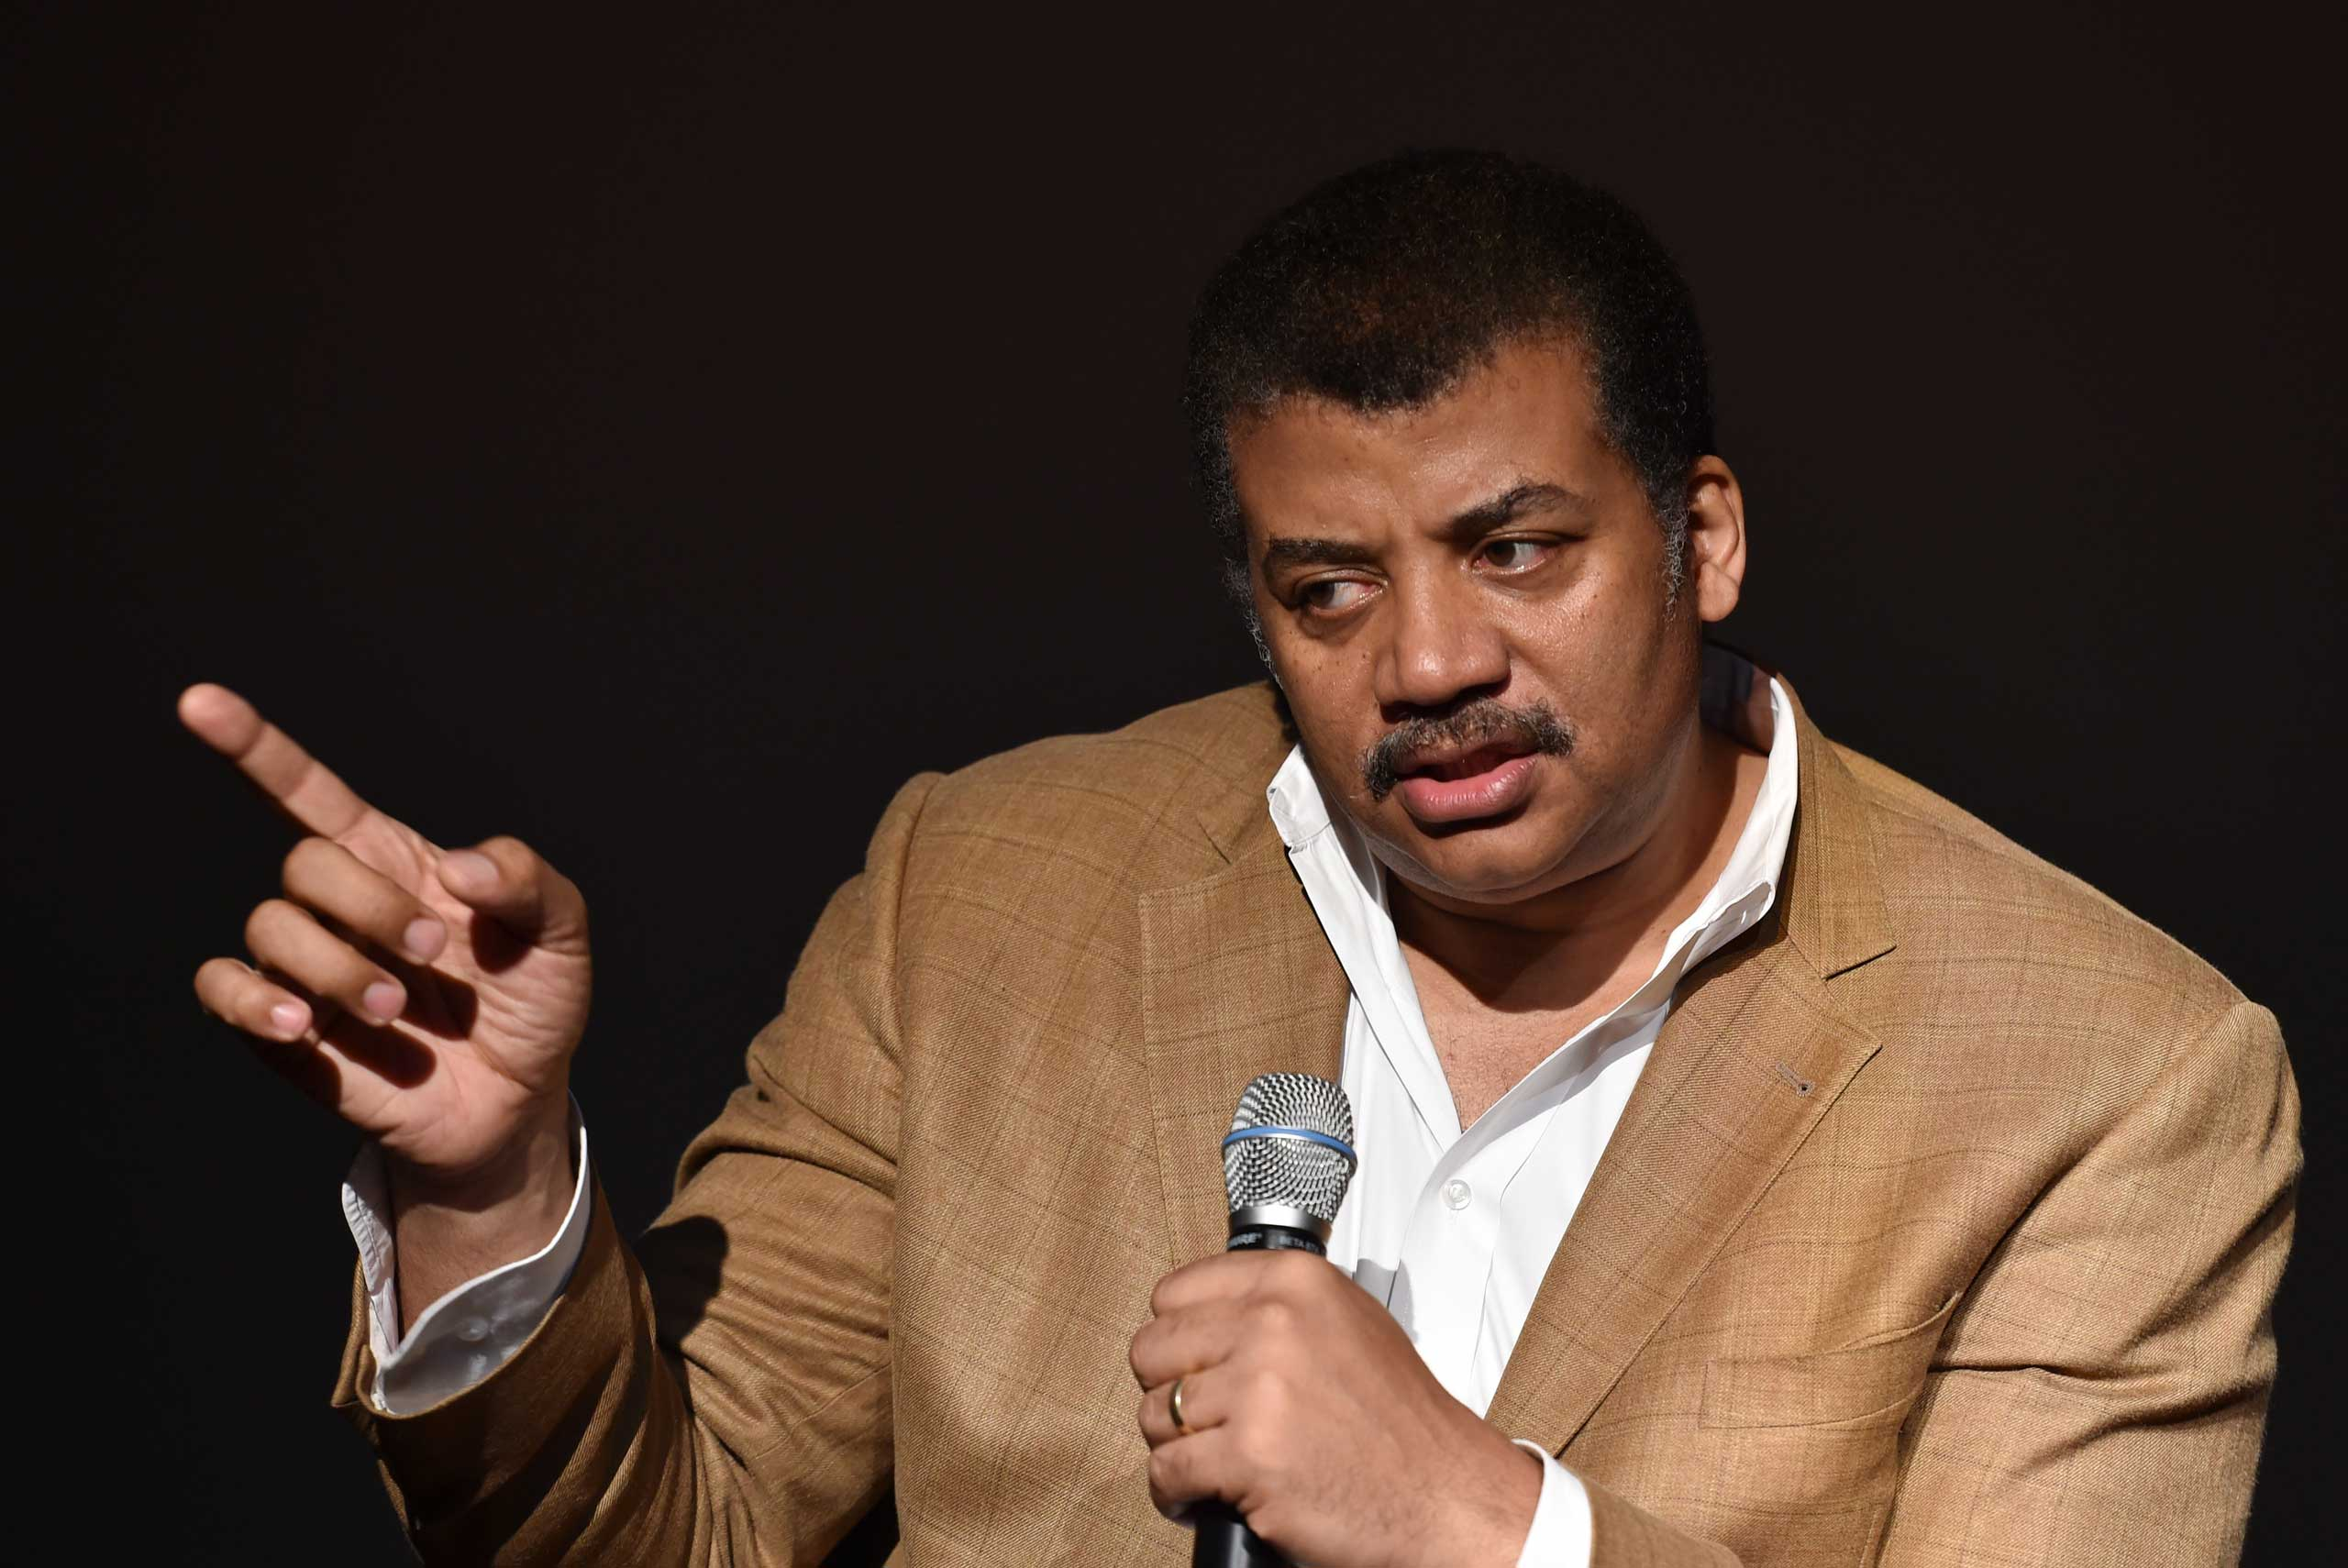 Neil deGrasse Tyson in New York in 2014.